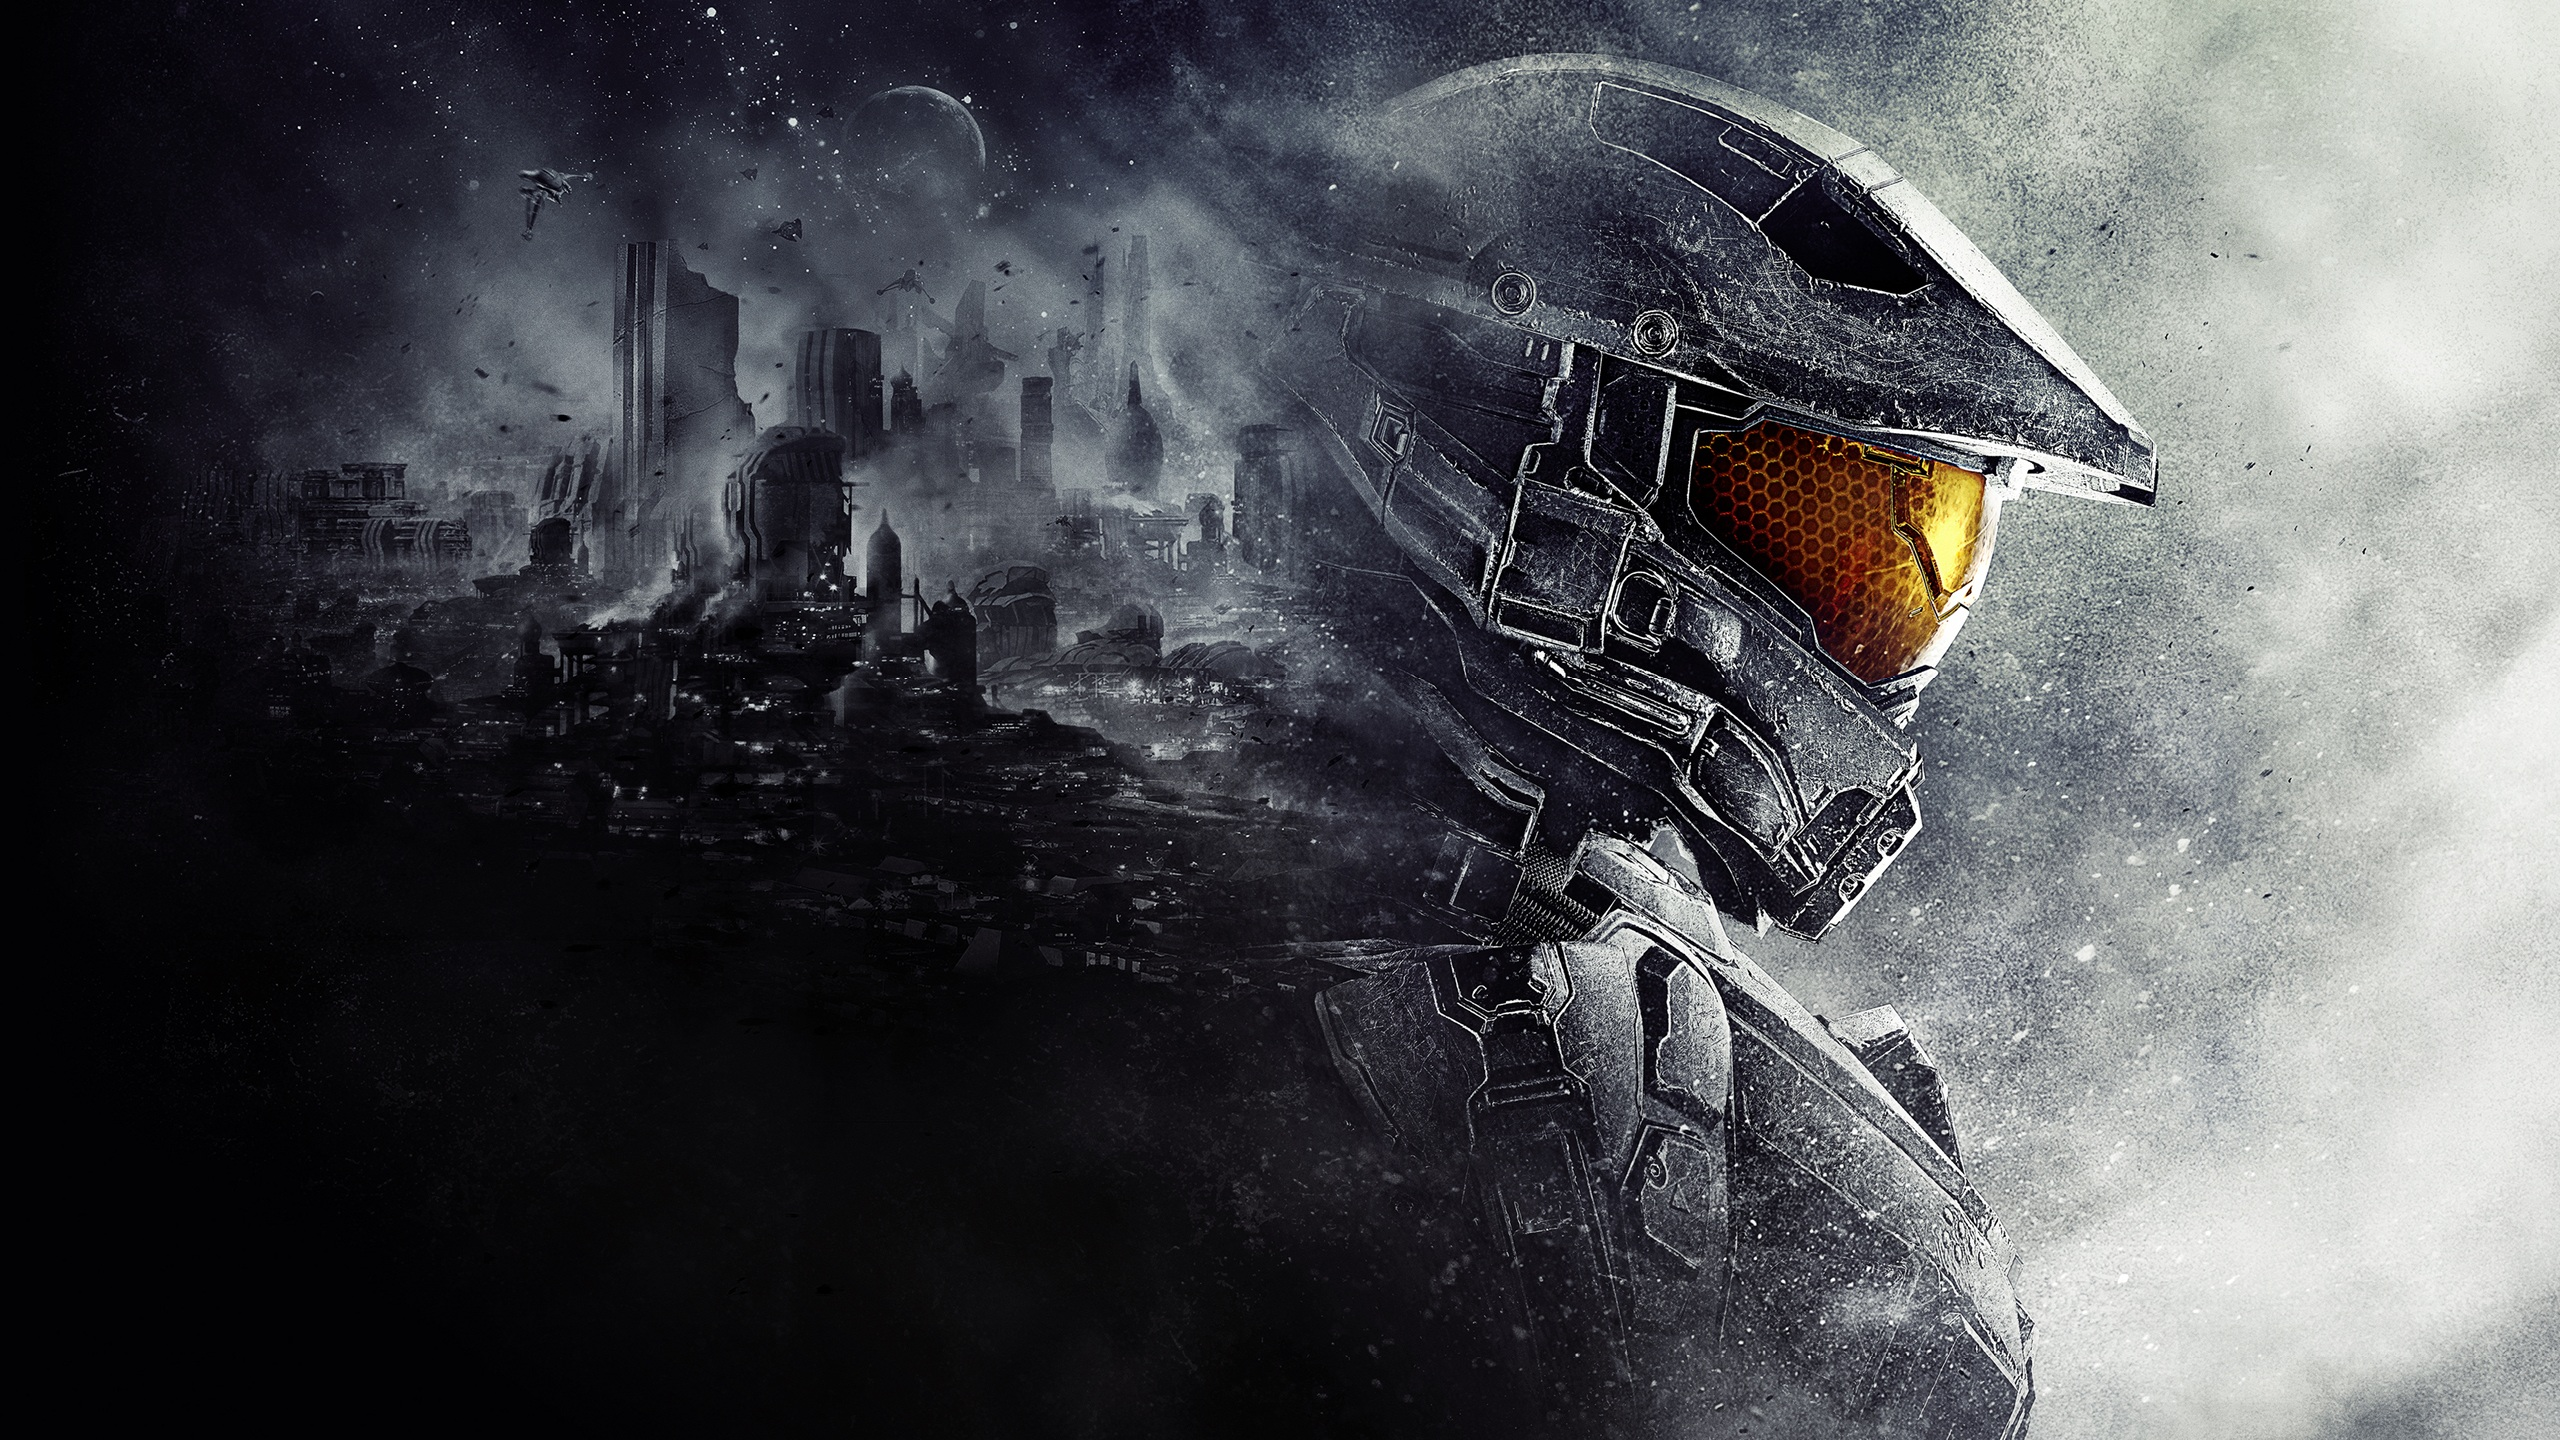 Halo 4 Wallpaper 1080p 102 images in Collection Page 1 2560x1440